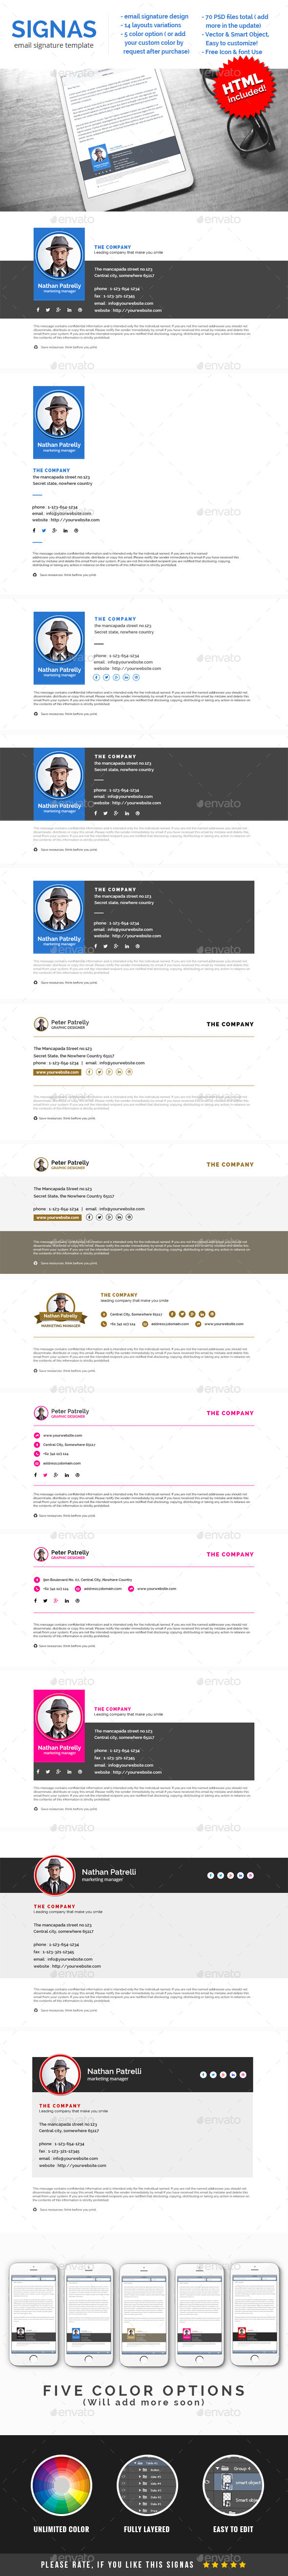 GraphicRiver Signas 2 E-signature Template 11034713